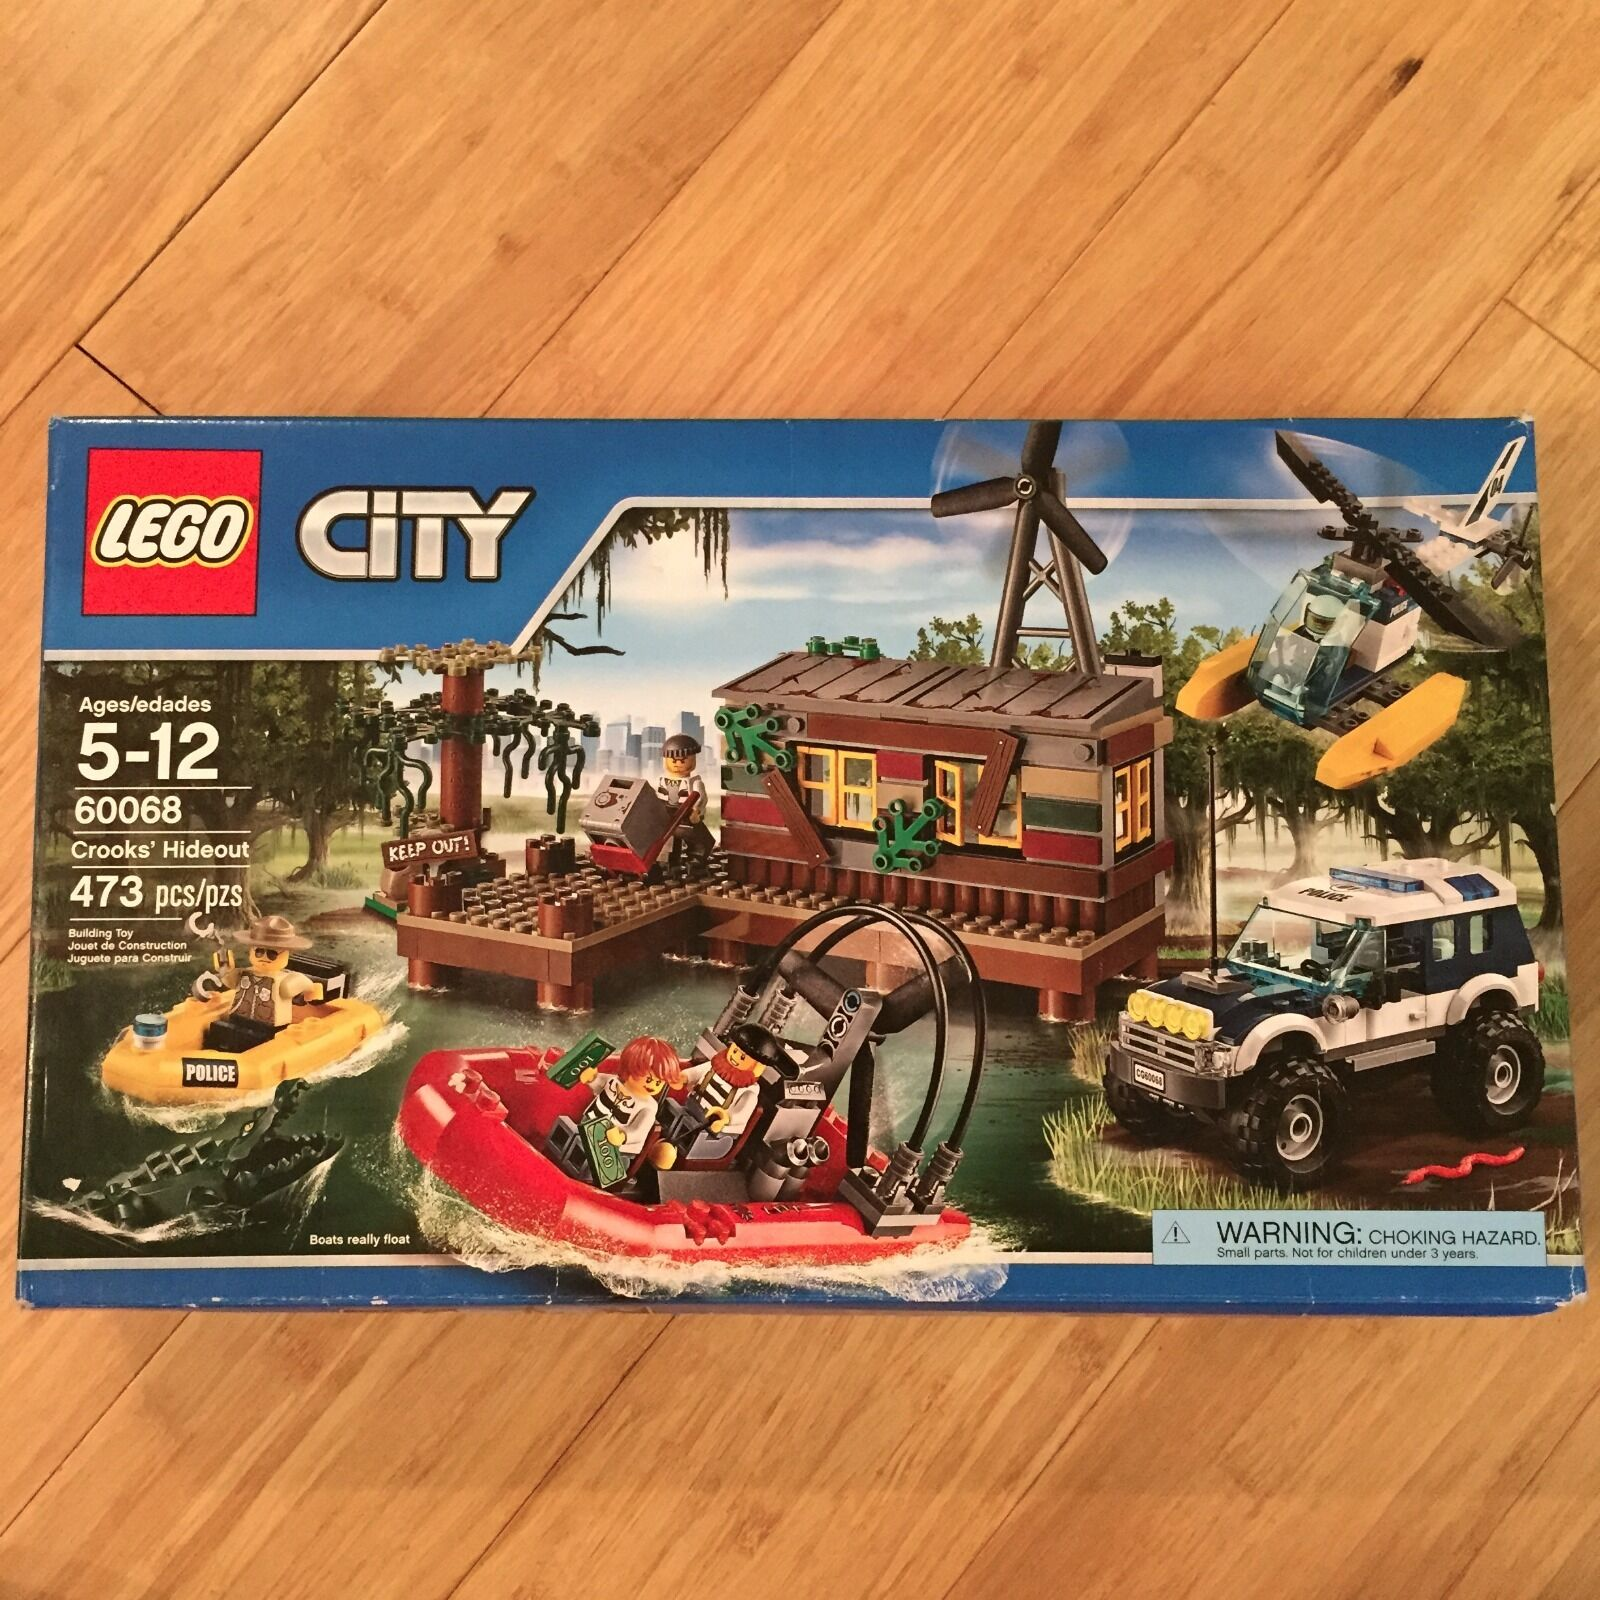 Lego 60068 Crooks' Hideout - Police and Robbers Legos Toy Play Set